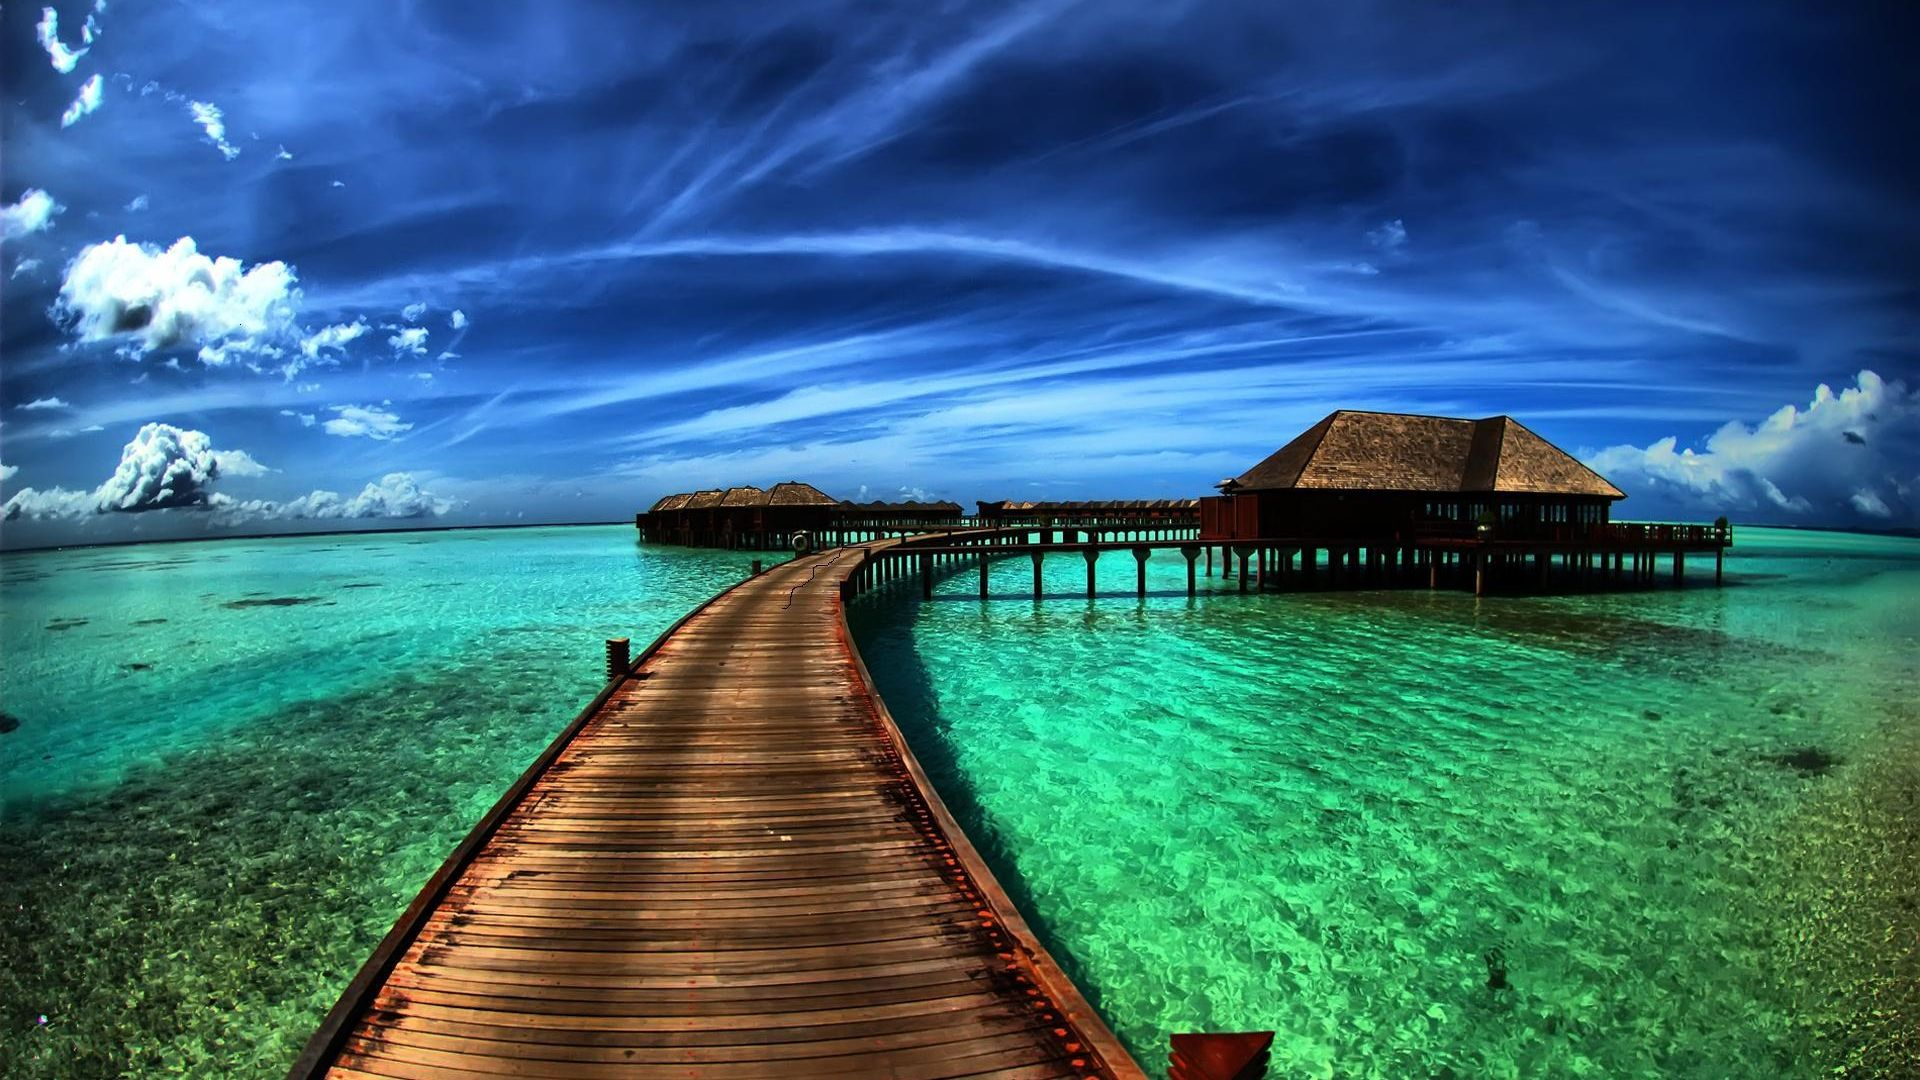 The Picture On Screensaver Pc The Maldives Island